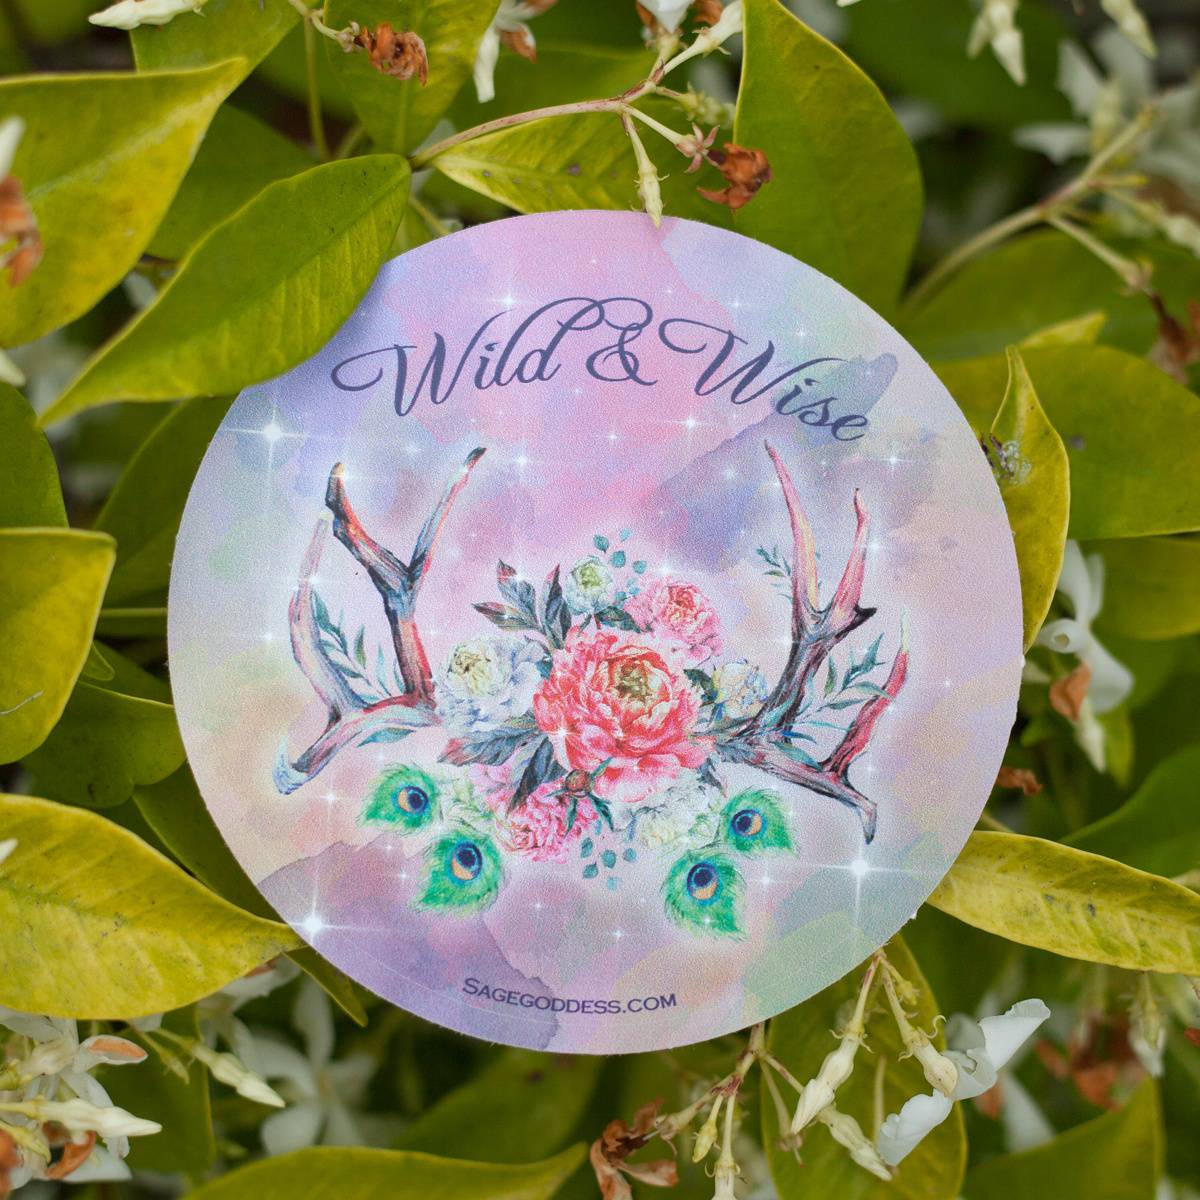 Wild & Wise Sticker 6_1